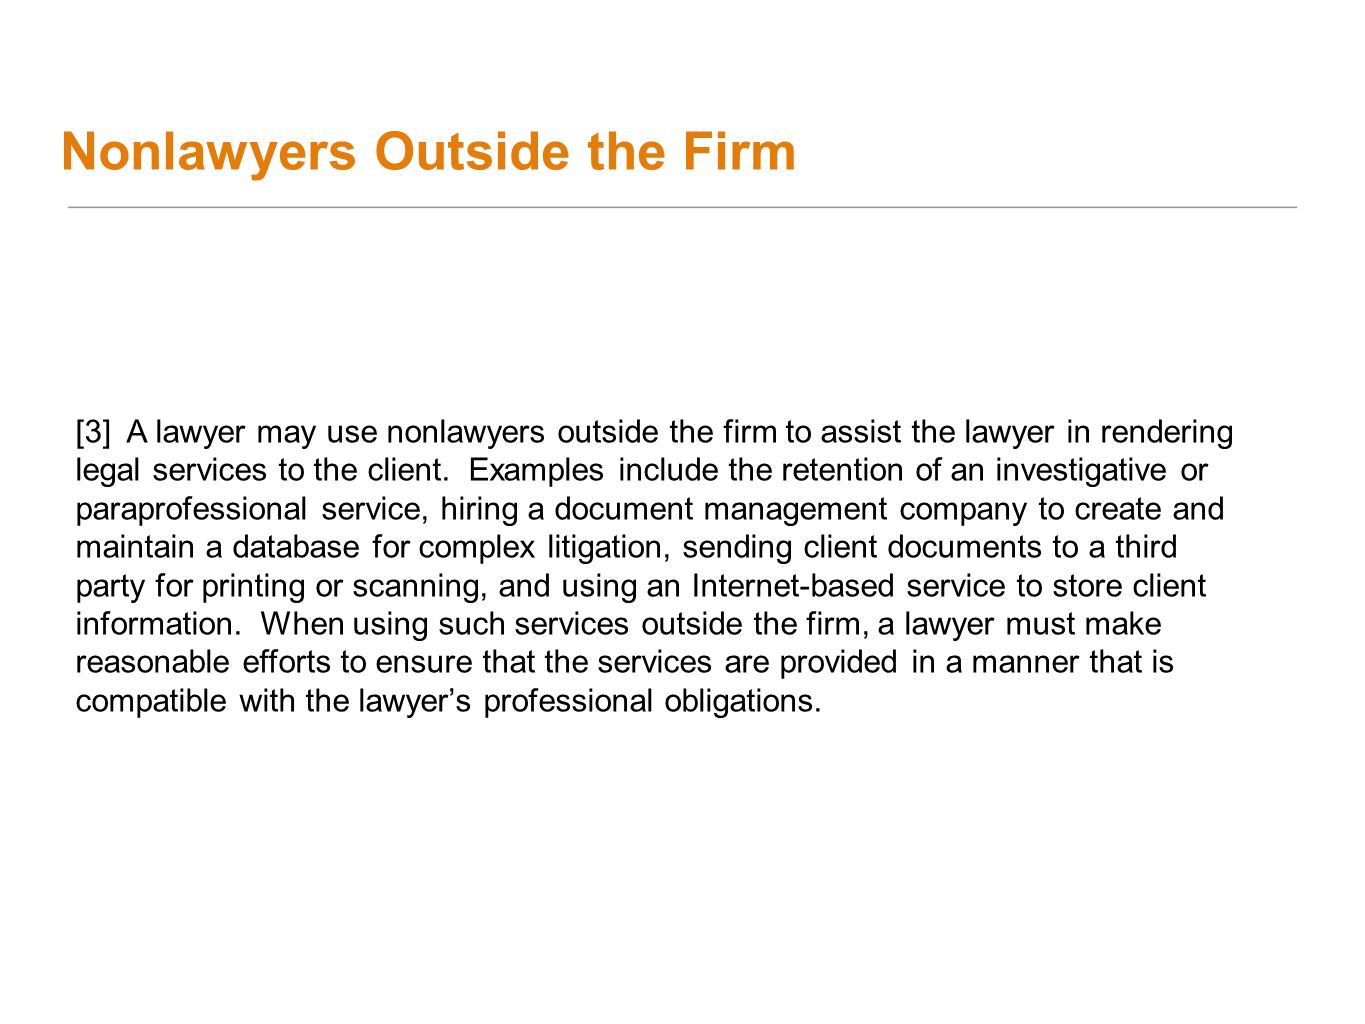 Nonlawyers Outside the Firm